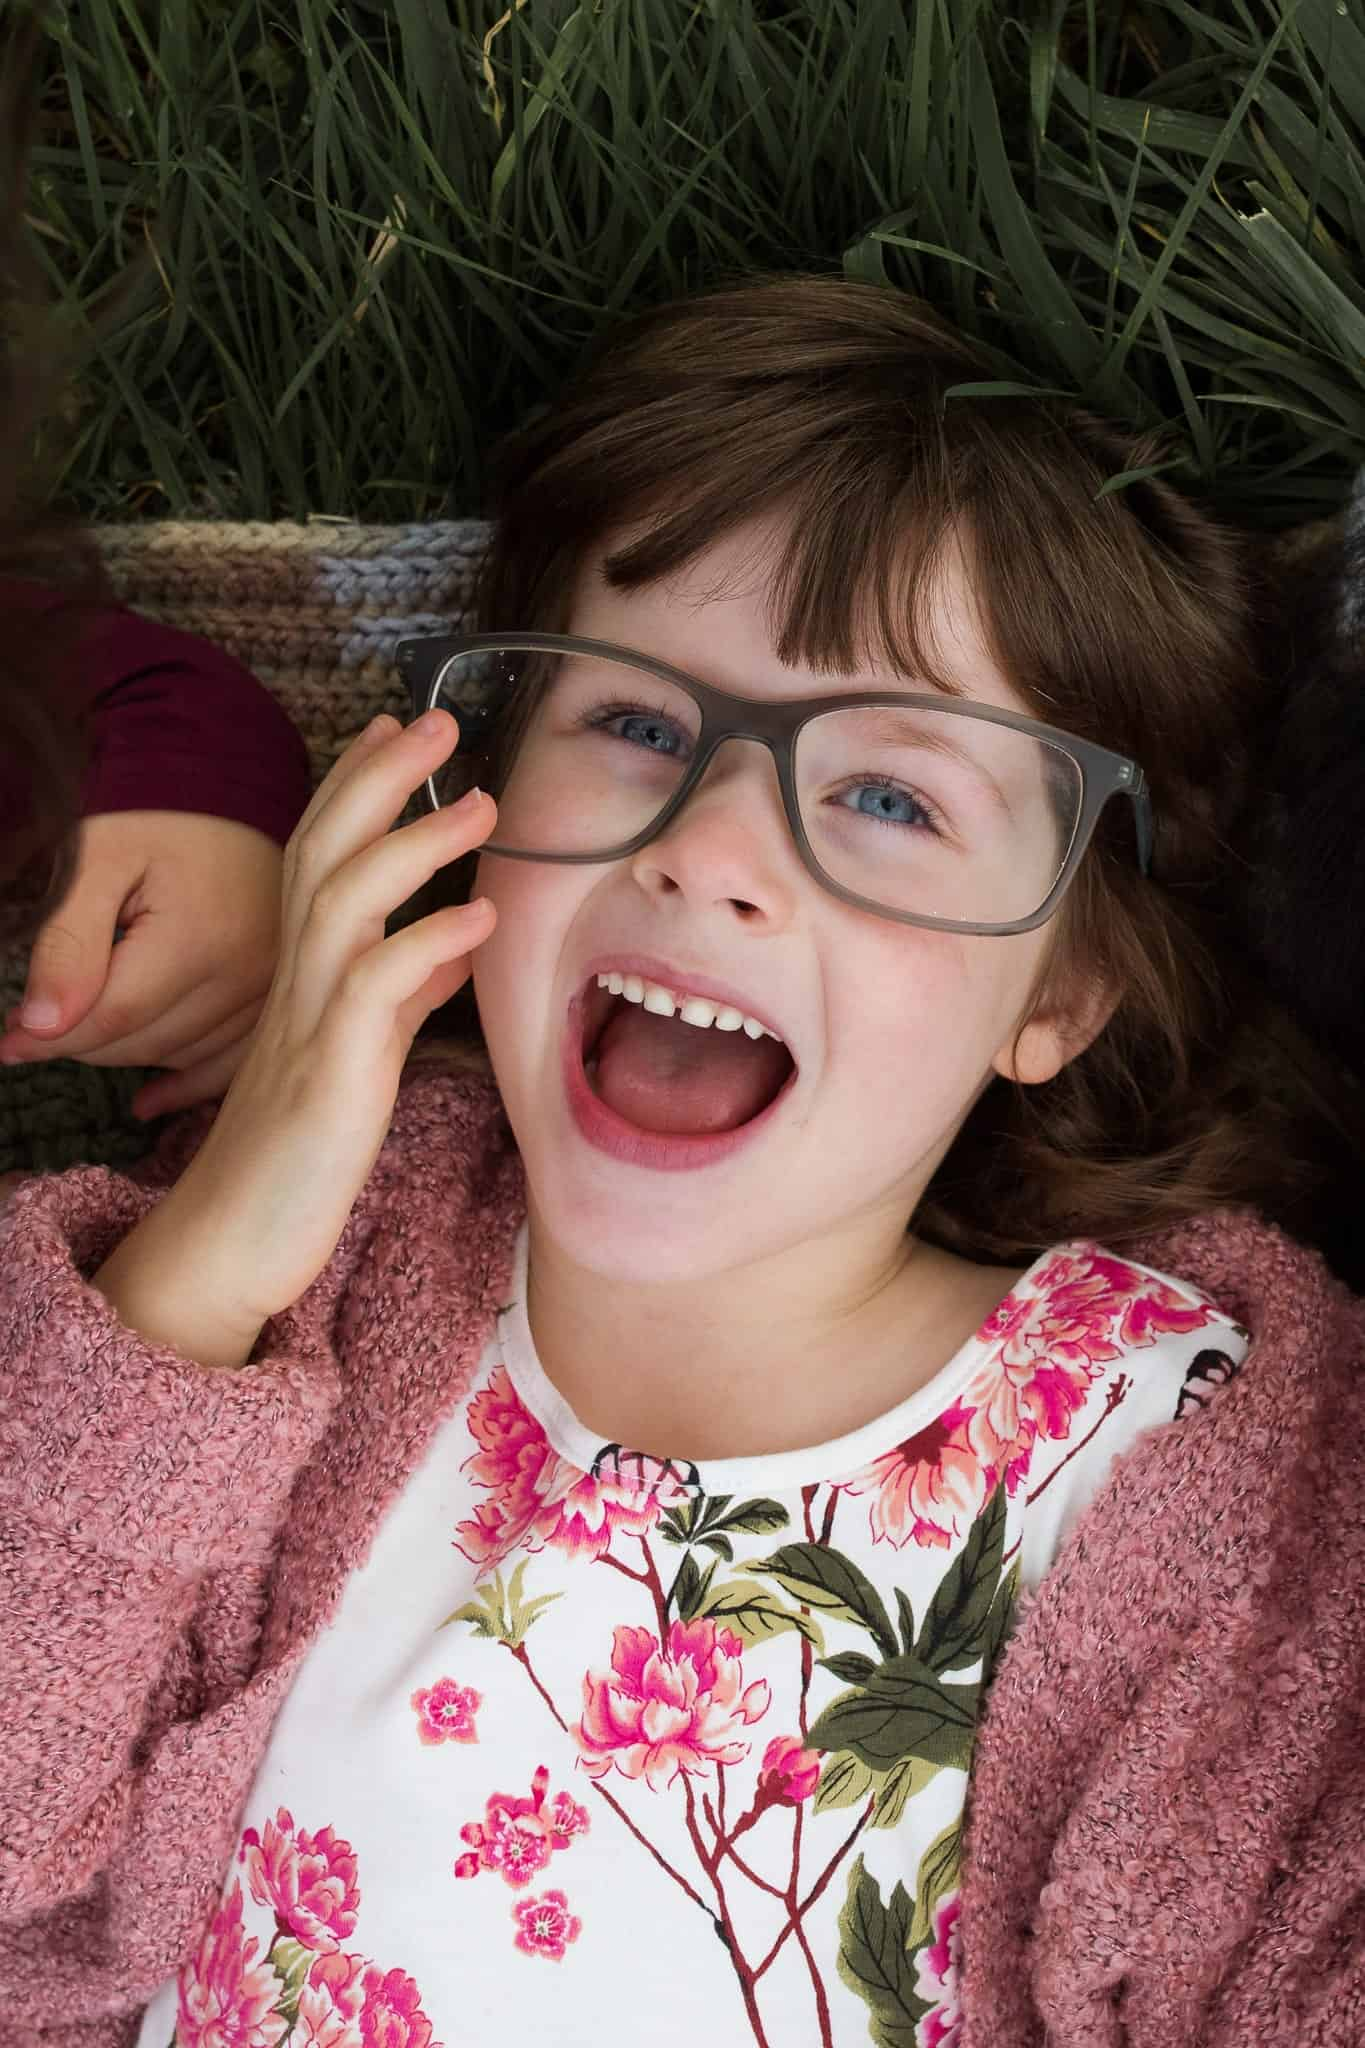 little girl laying on her back wearing her dad's glasses laughing